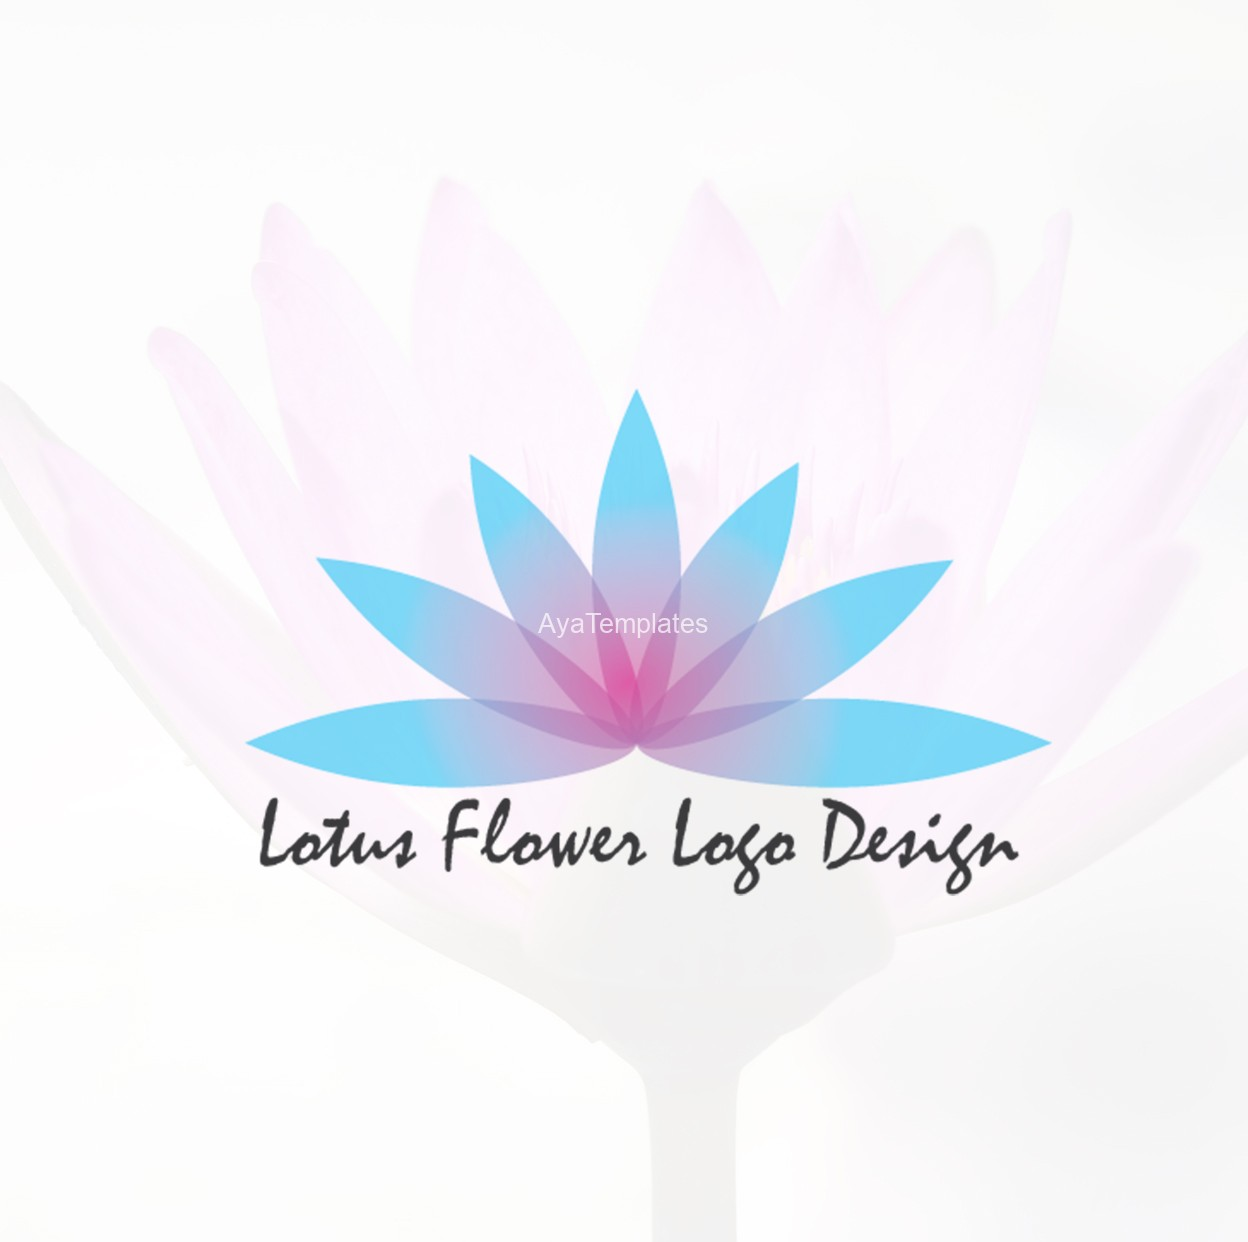 Lotus flower logo design aya templates lotus flower logo design izmirmasajfo